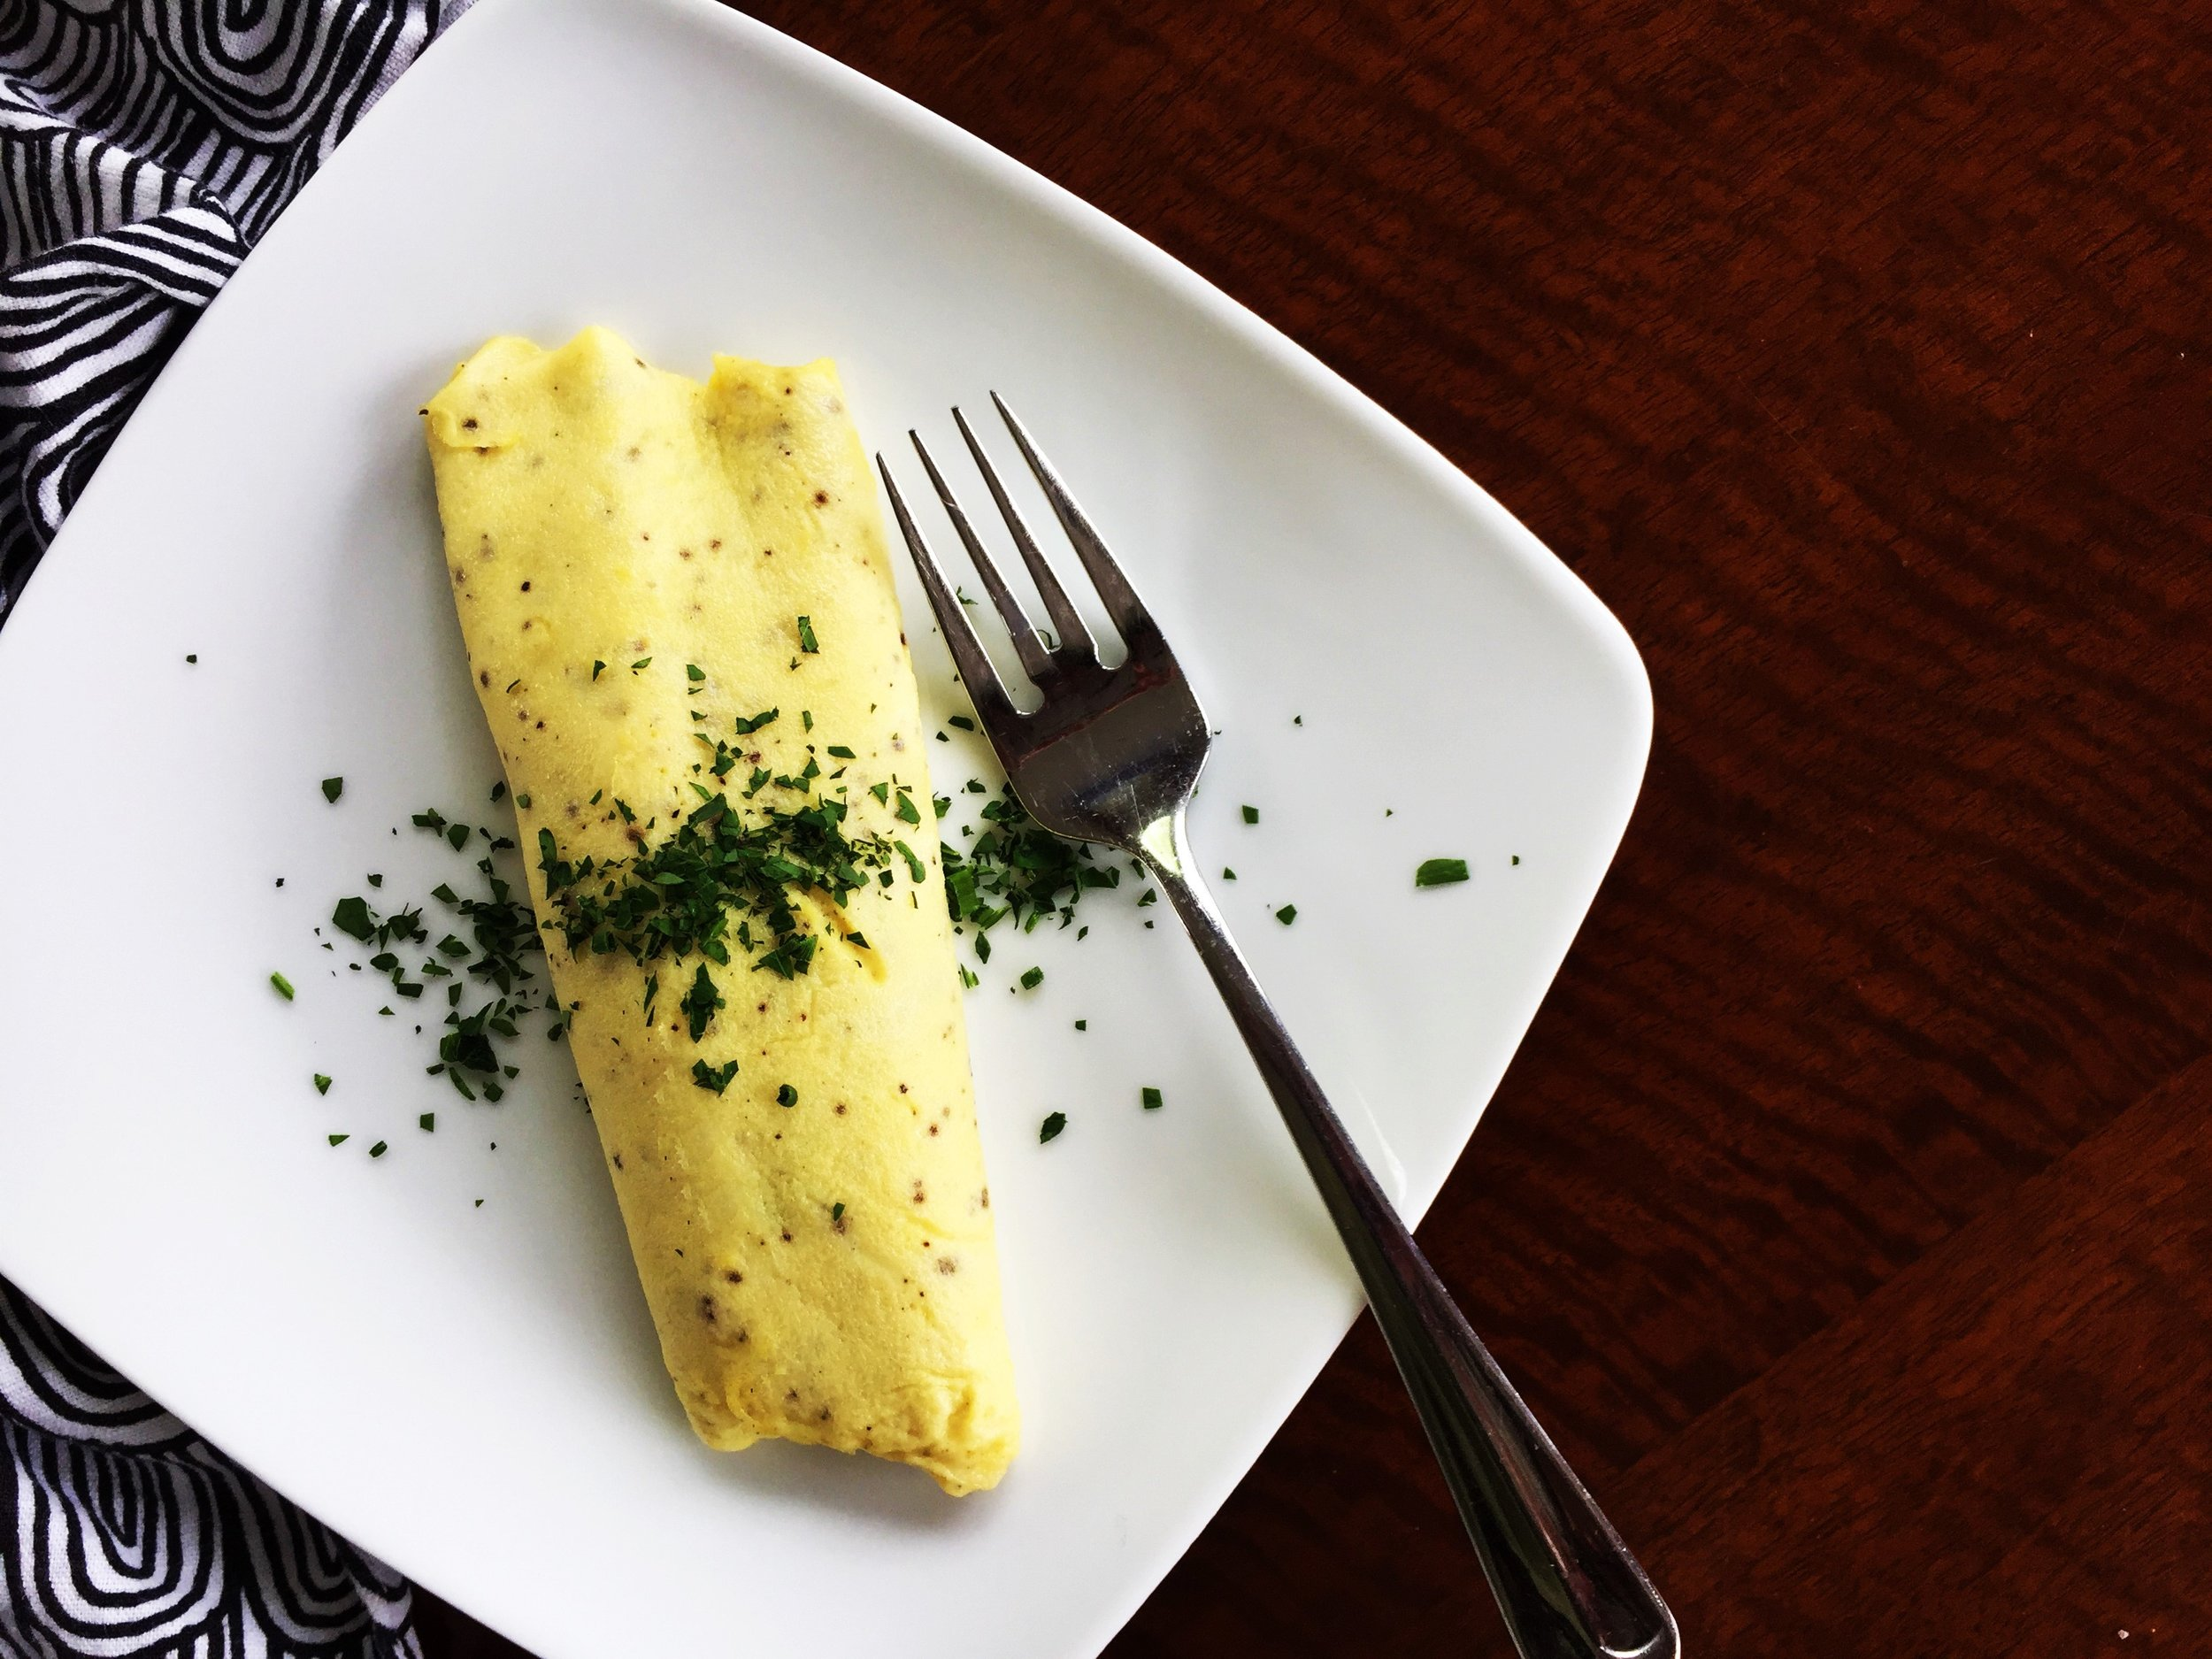 This omelette was perfectly made in the Adventure Kitchen, not poorly-made at the Lucky Smells Lumbermill.